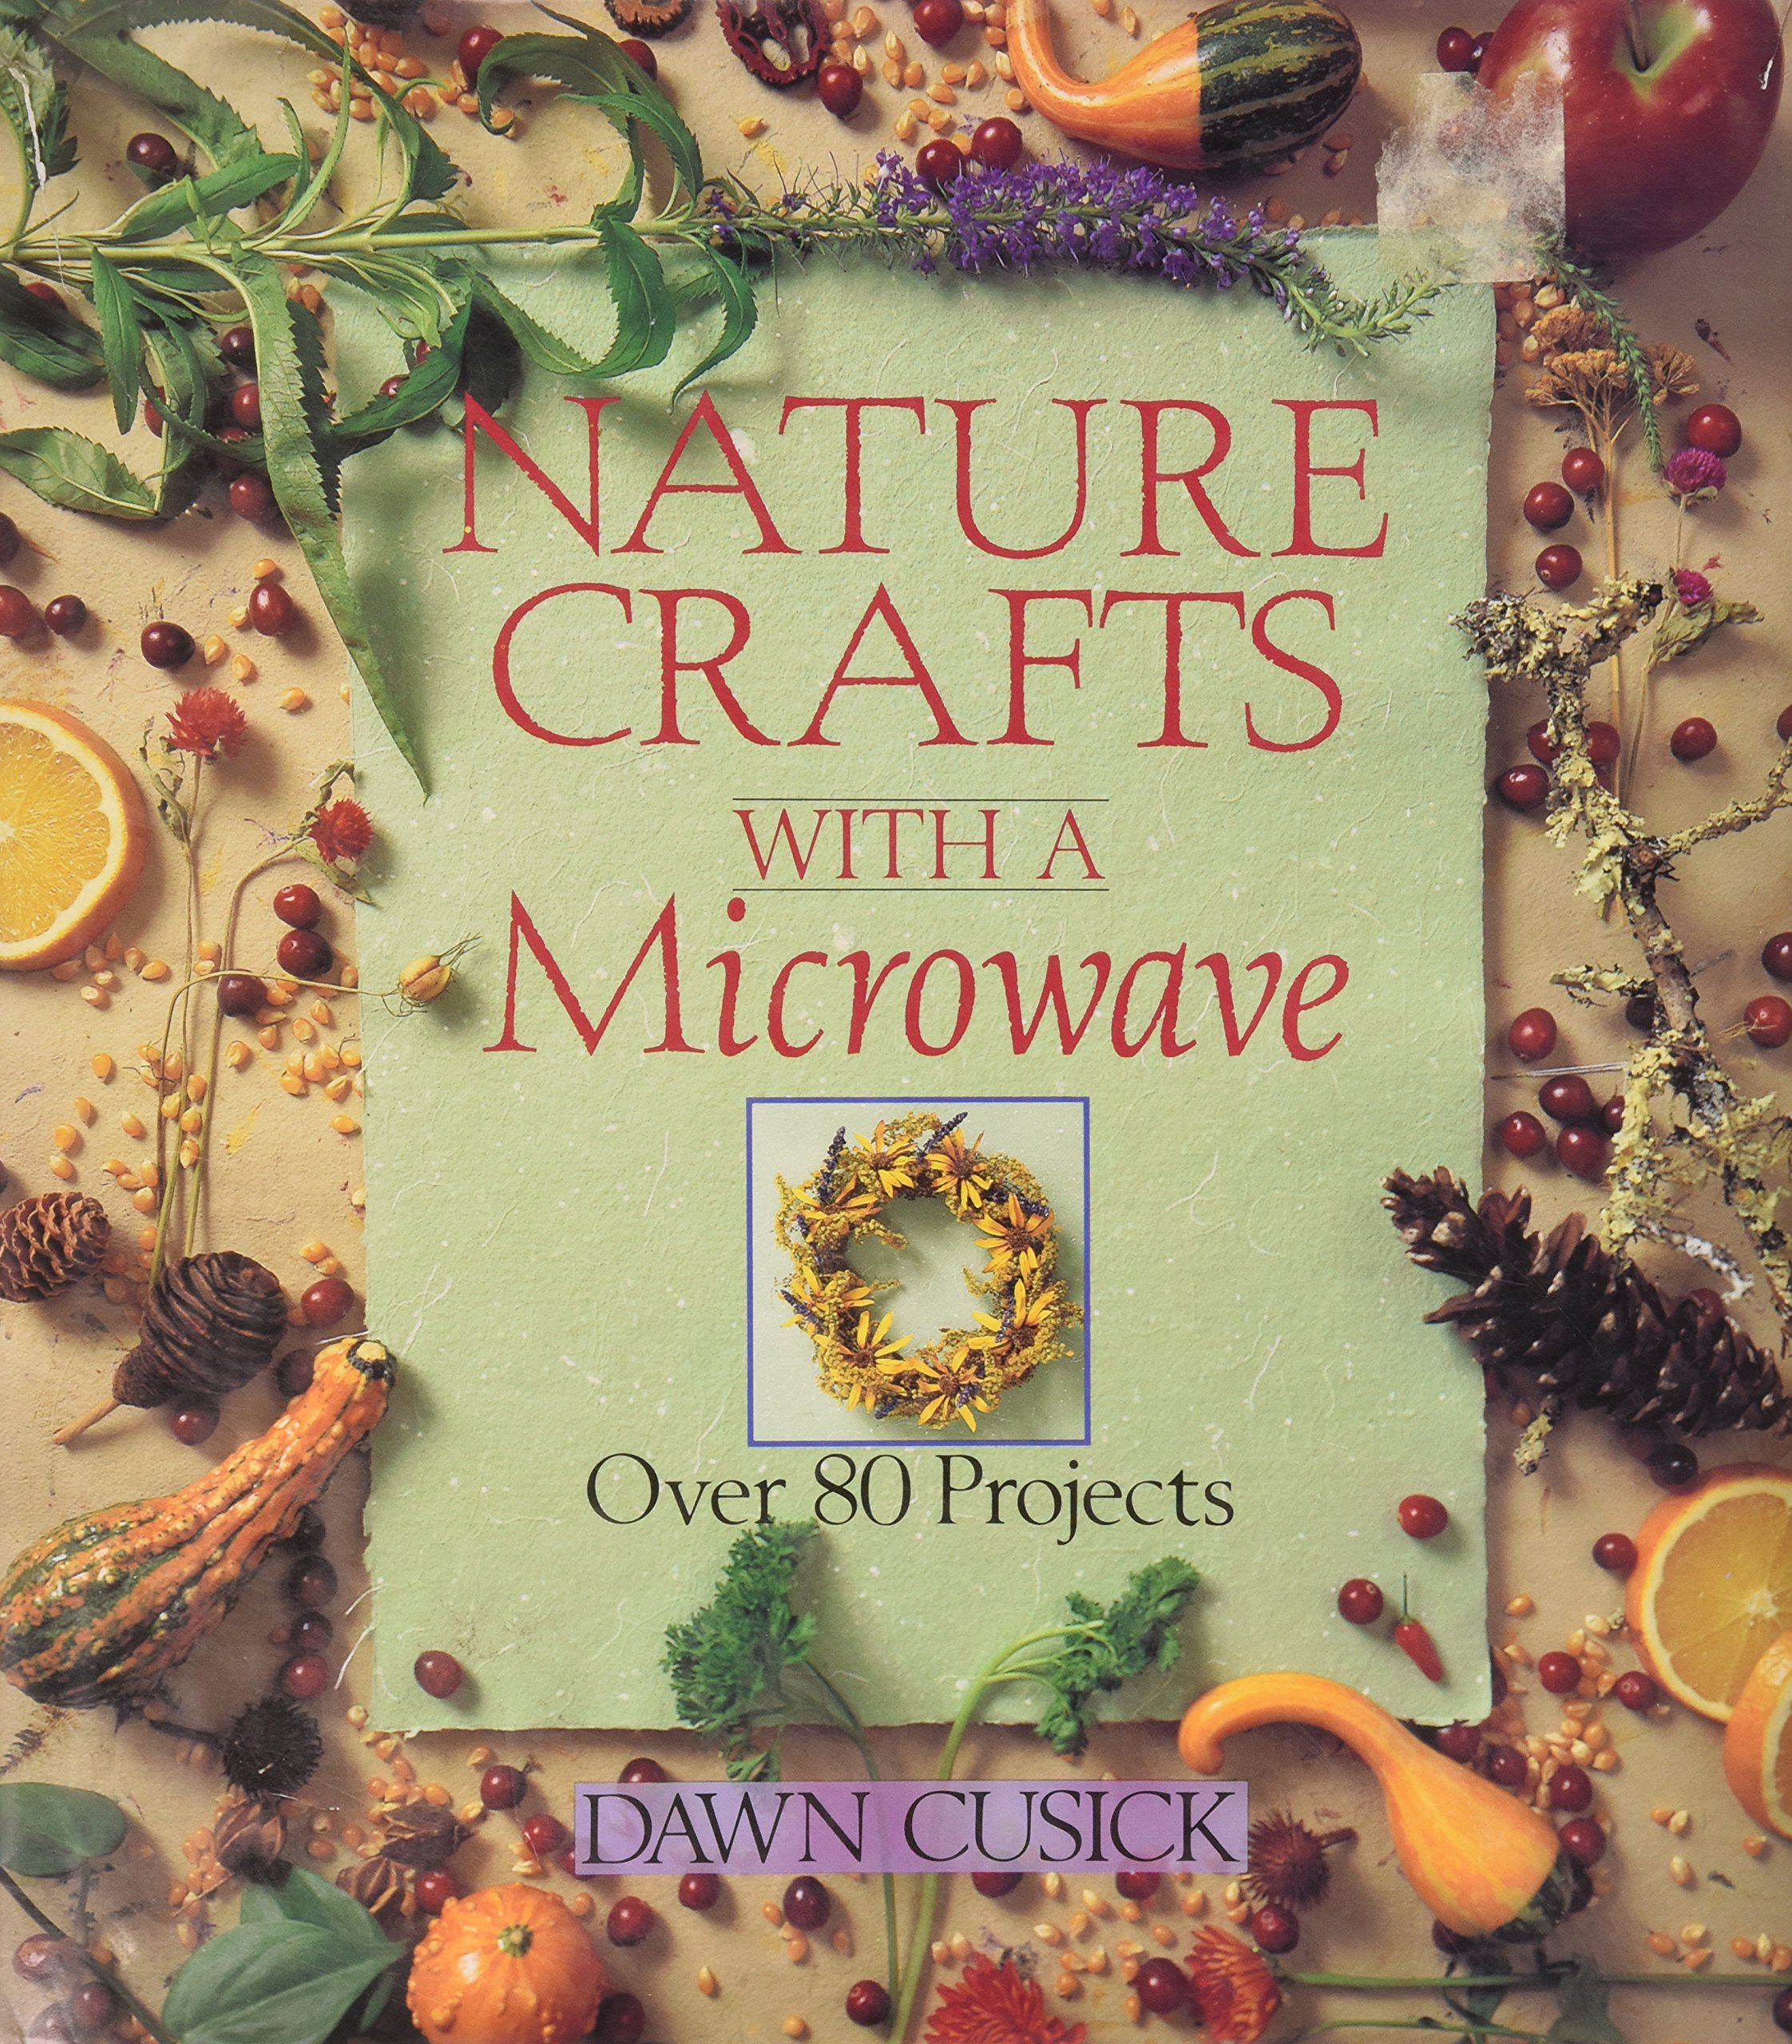 Nature Crafts Microwave Dawn Cusick product image